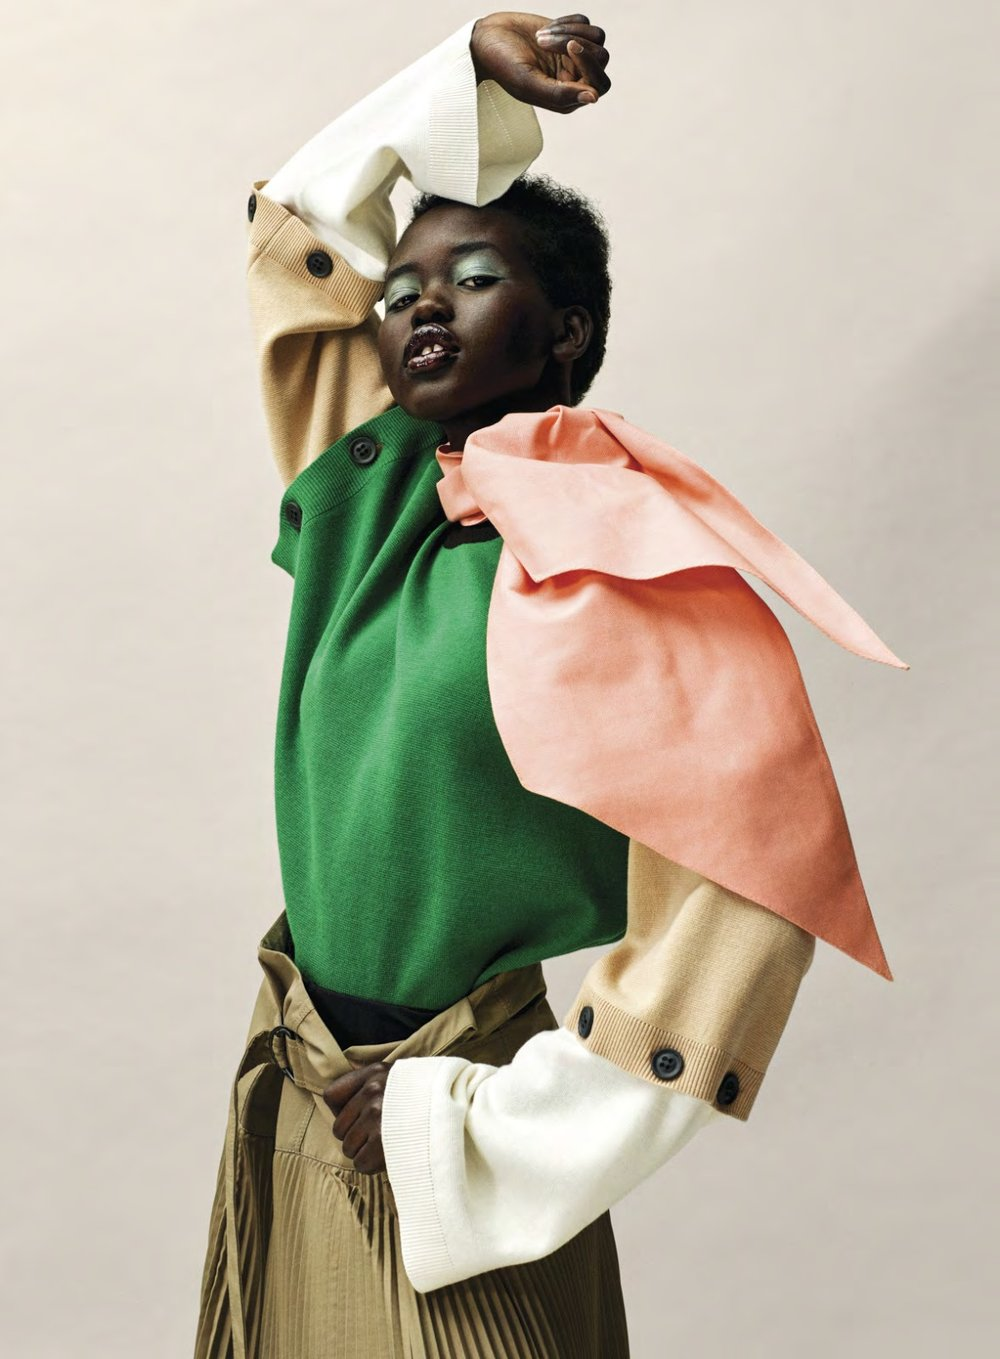 Adut Akech by Josh Olins for Vogue US January 2019 (5).jpg